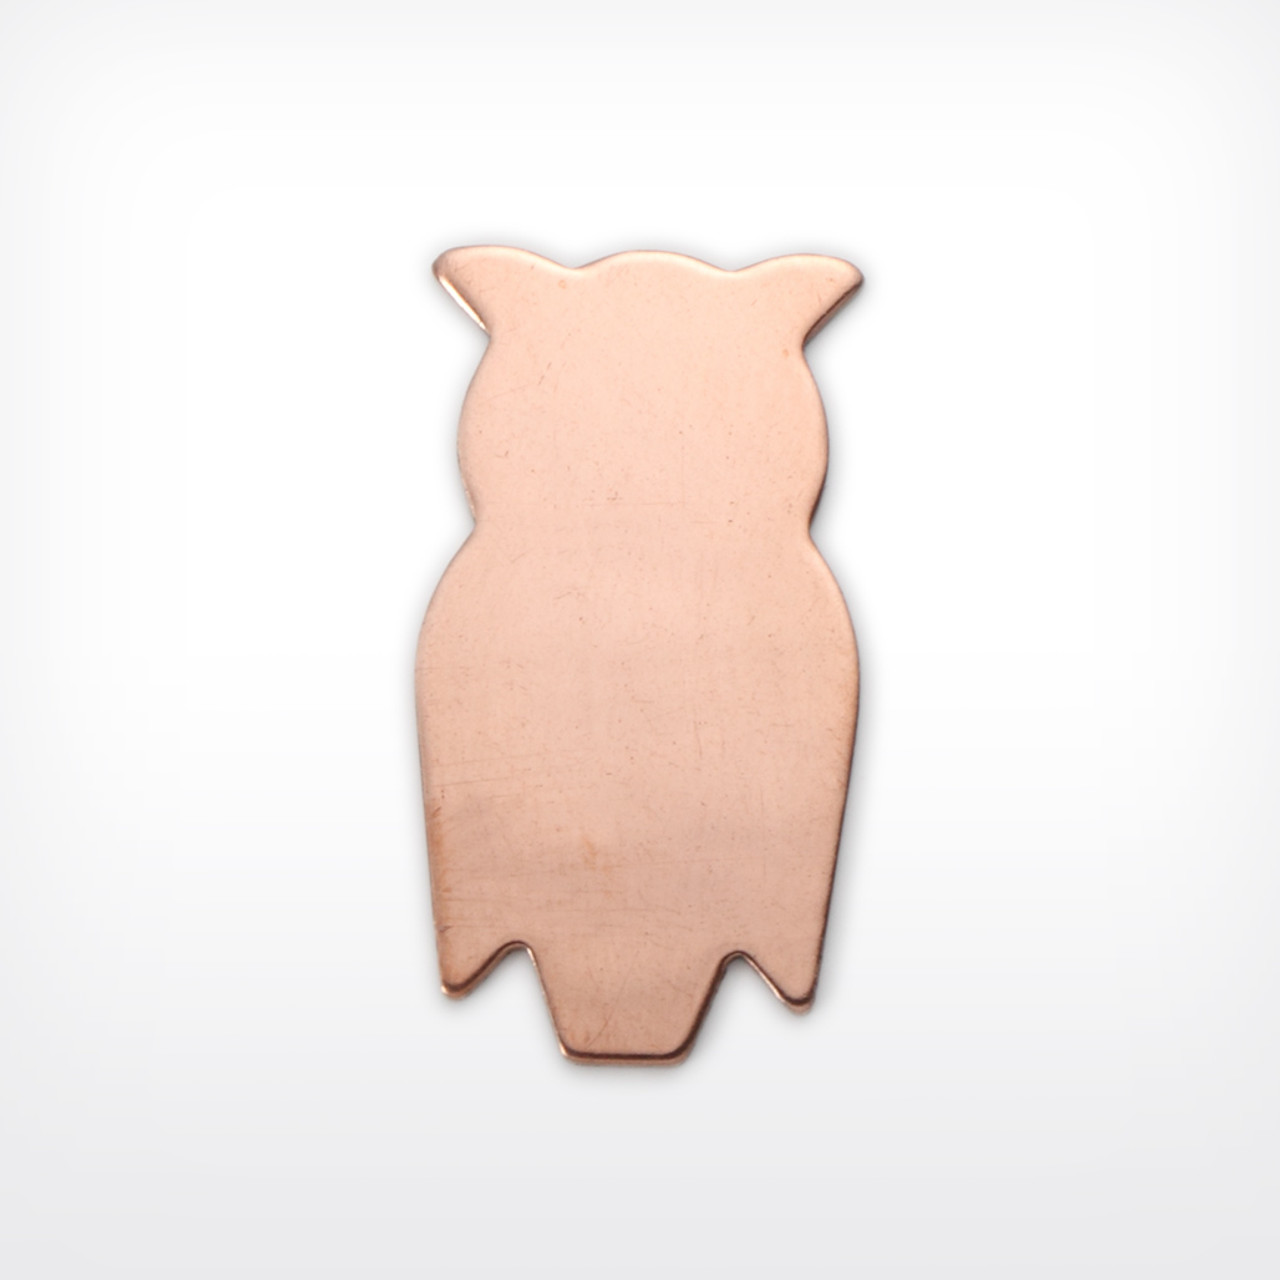 Copper Blank Owl Stamped Shape for Enamelling & Other Crafts